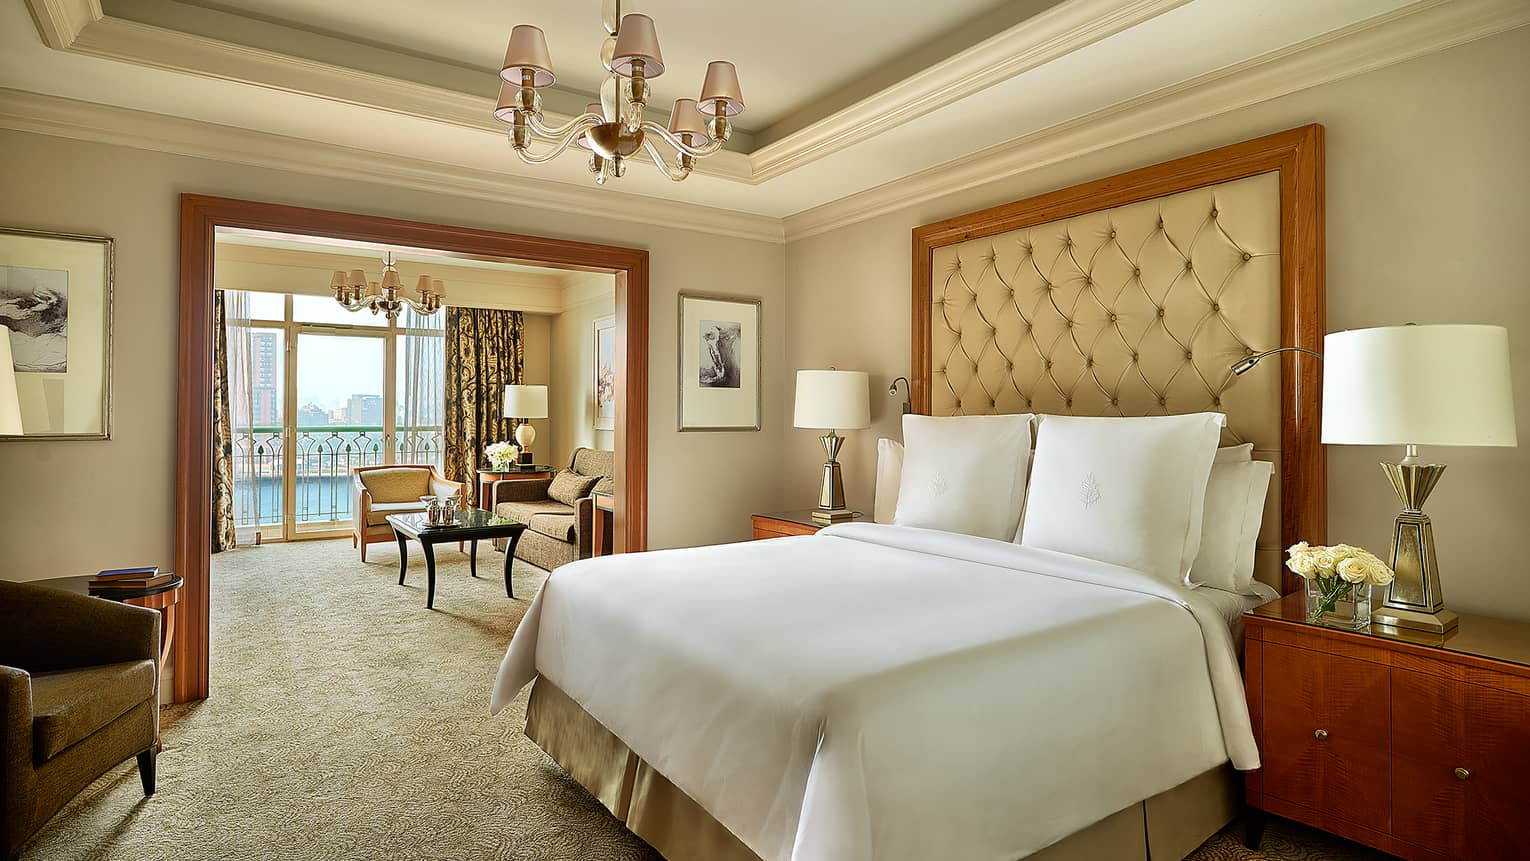 Premier Nile Room bedroom with cream and white tones, bed, high leather headboard, adjoining living room